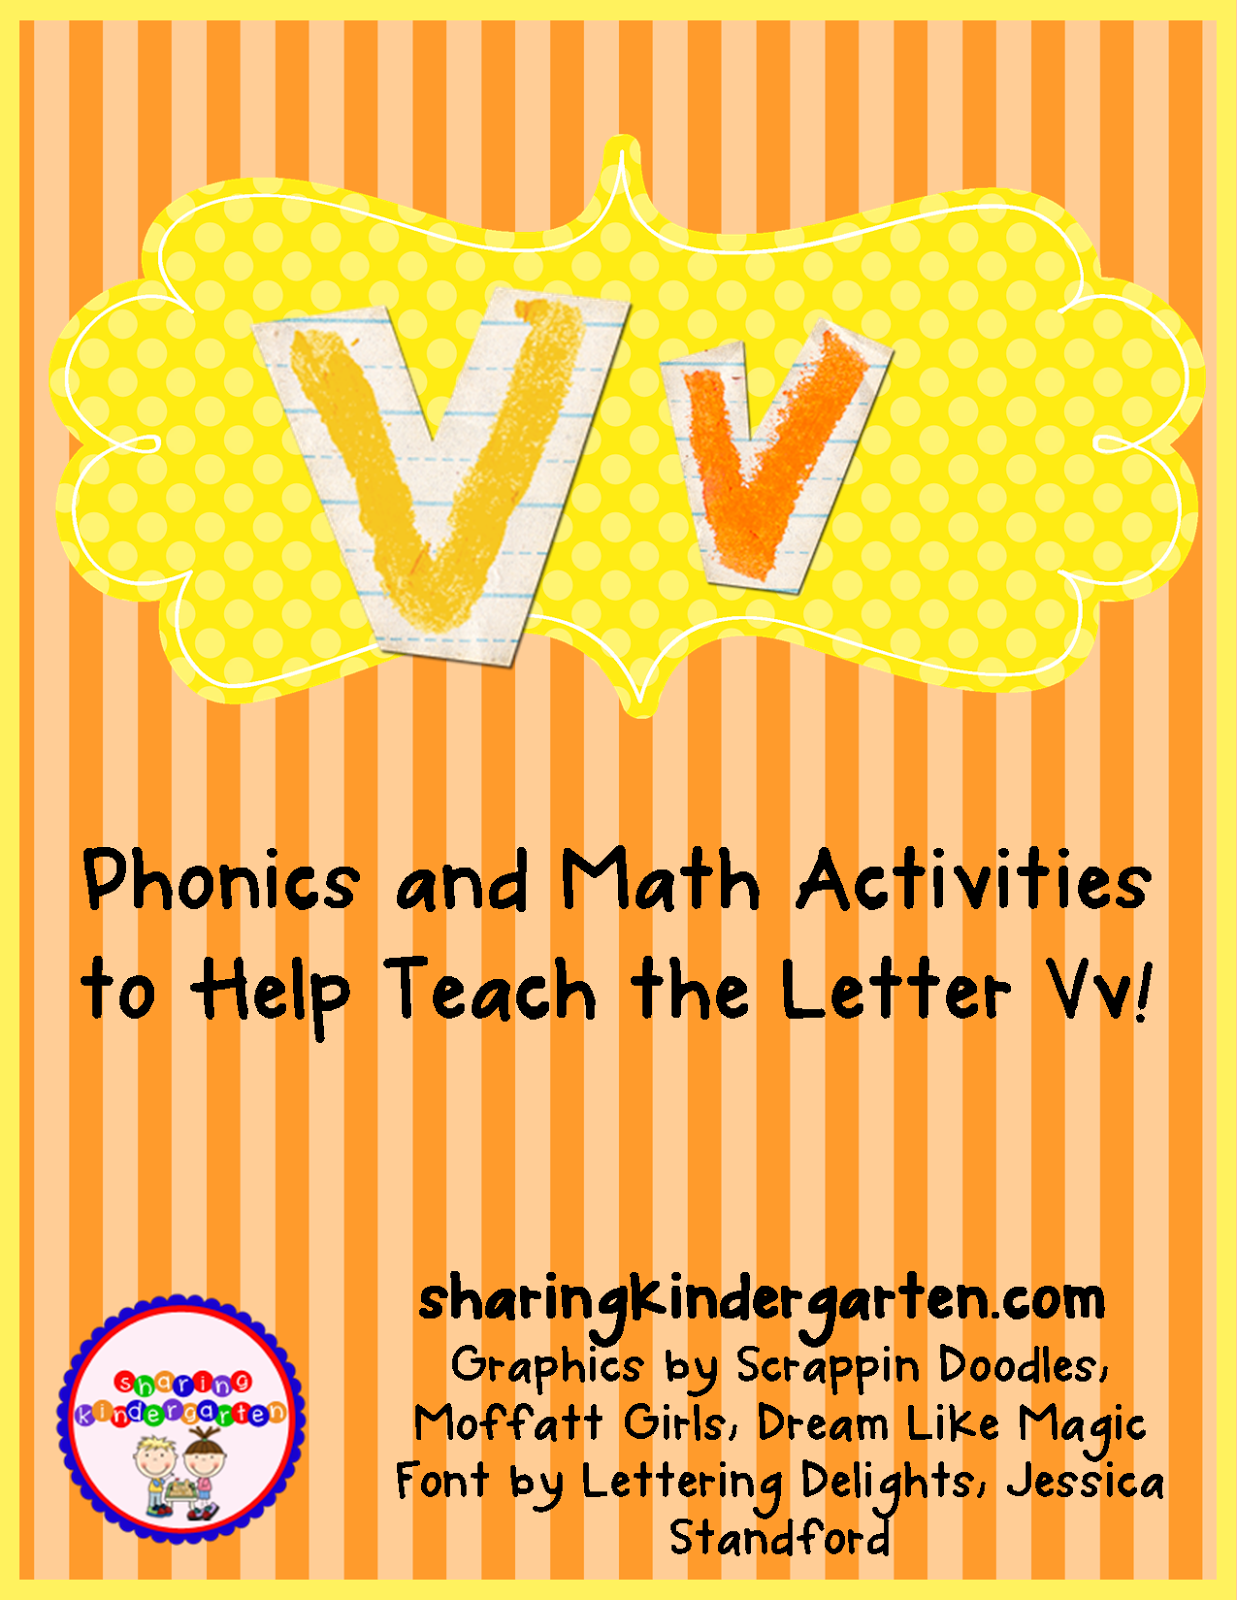 http://www.teacherspayteachers.com/Product/Vv-Activities-783290